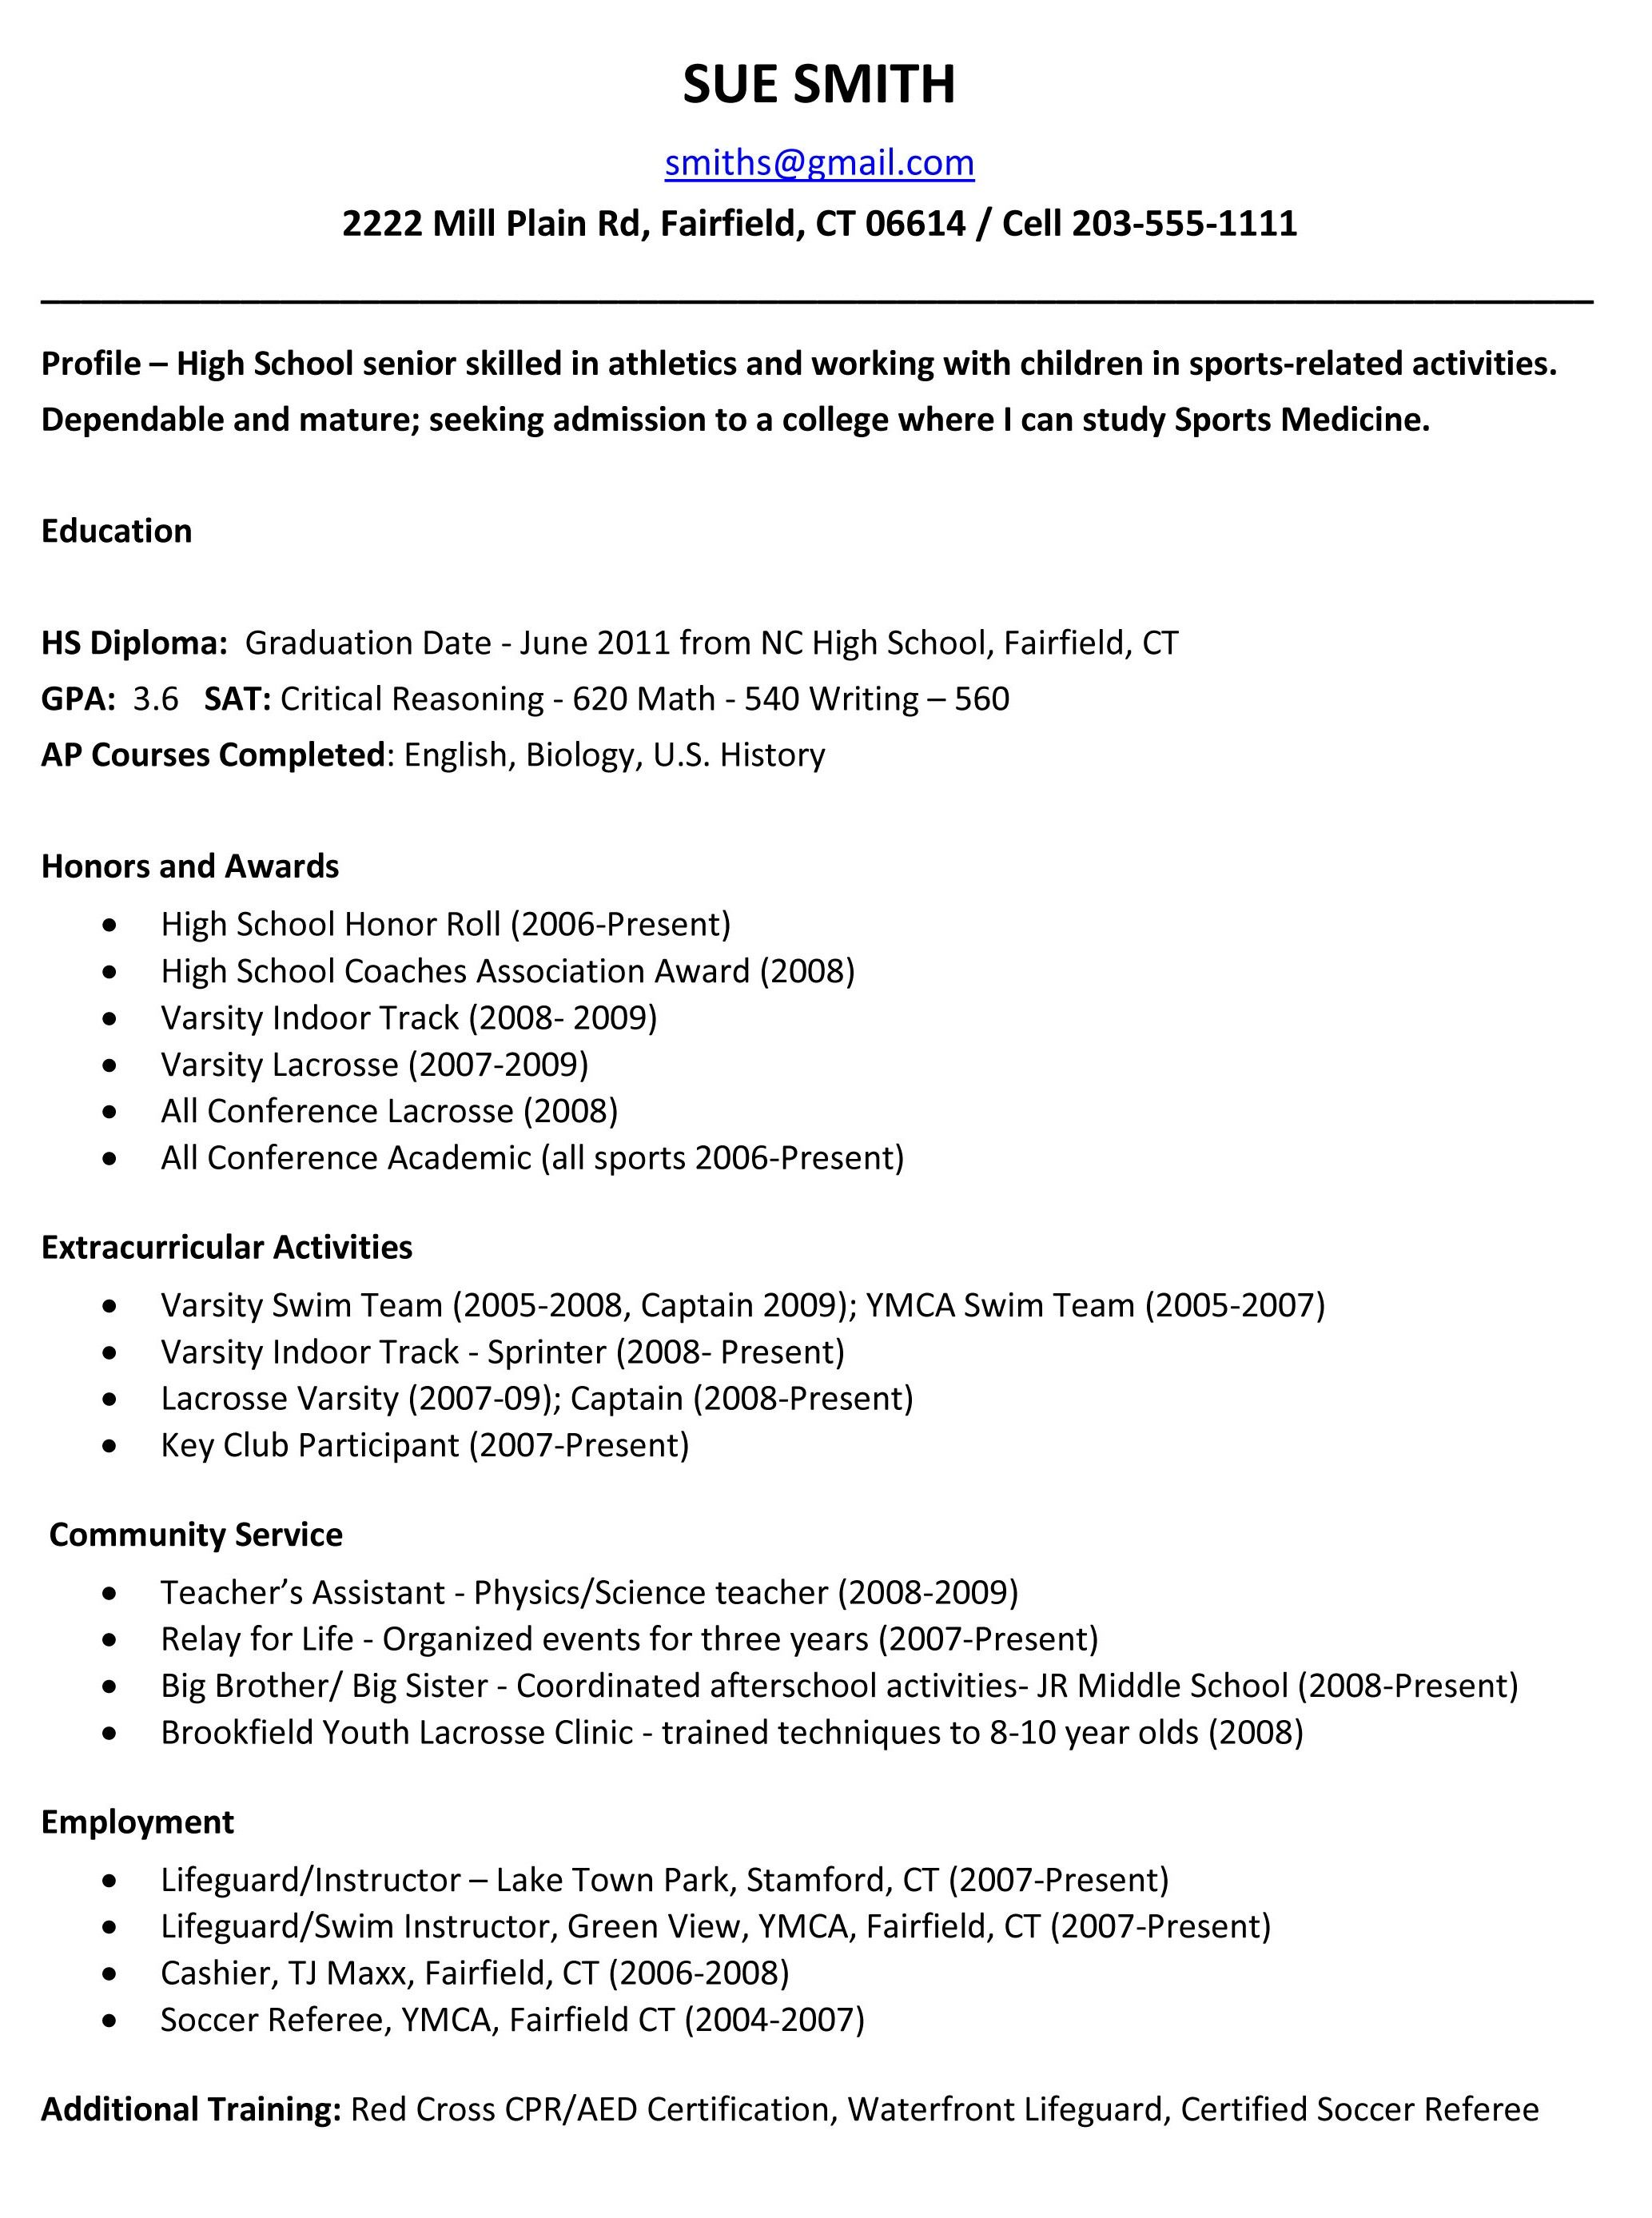 Example Resume For High School Students For College Applications School  Resume Templateregularmidwesterners.com | Regularmidwesterners  Examples Of Resumes For College Students